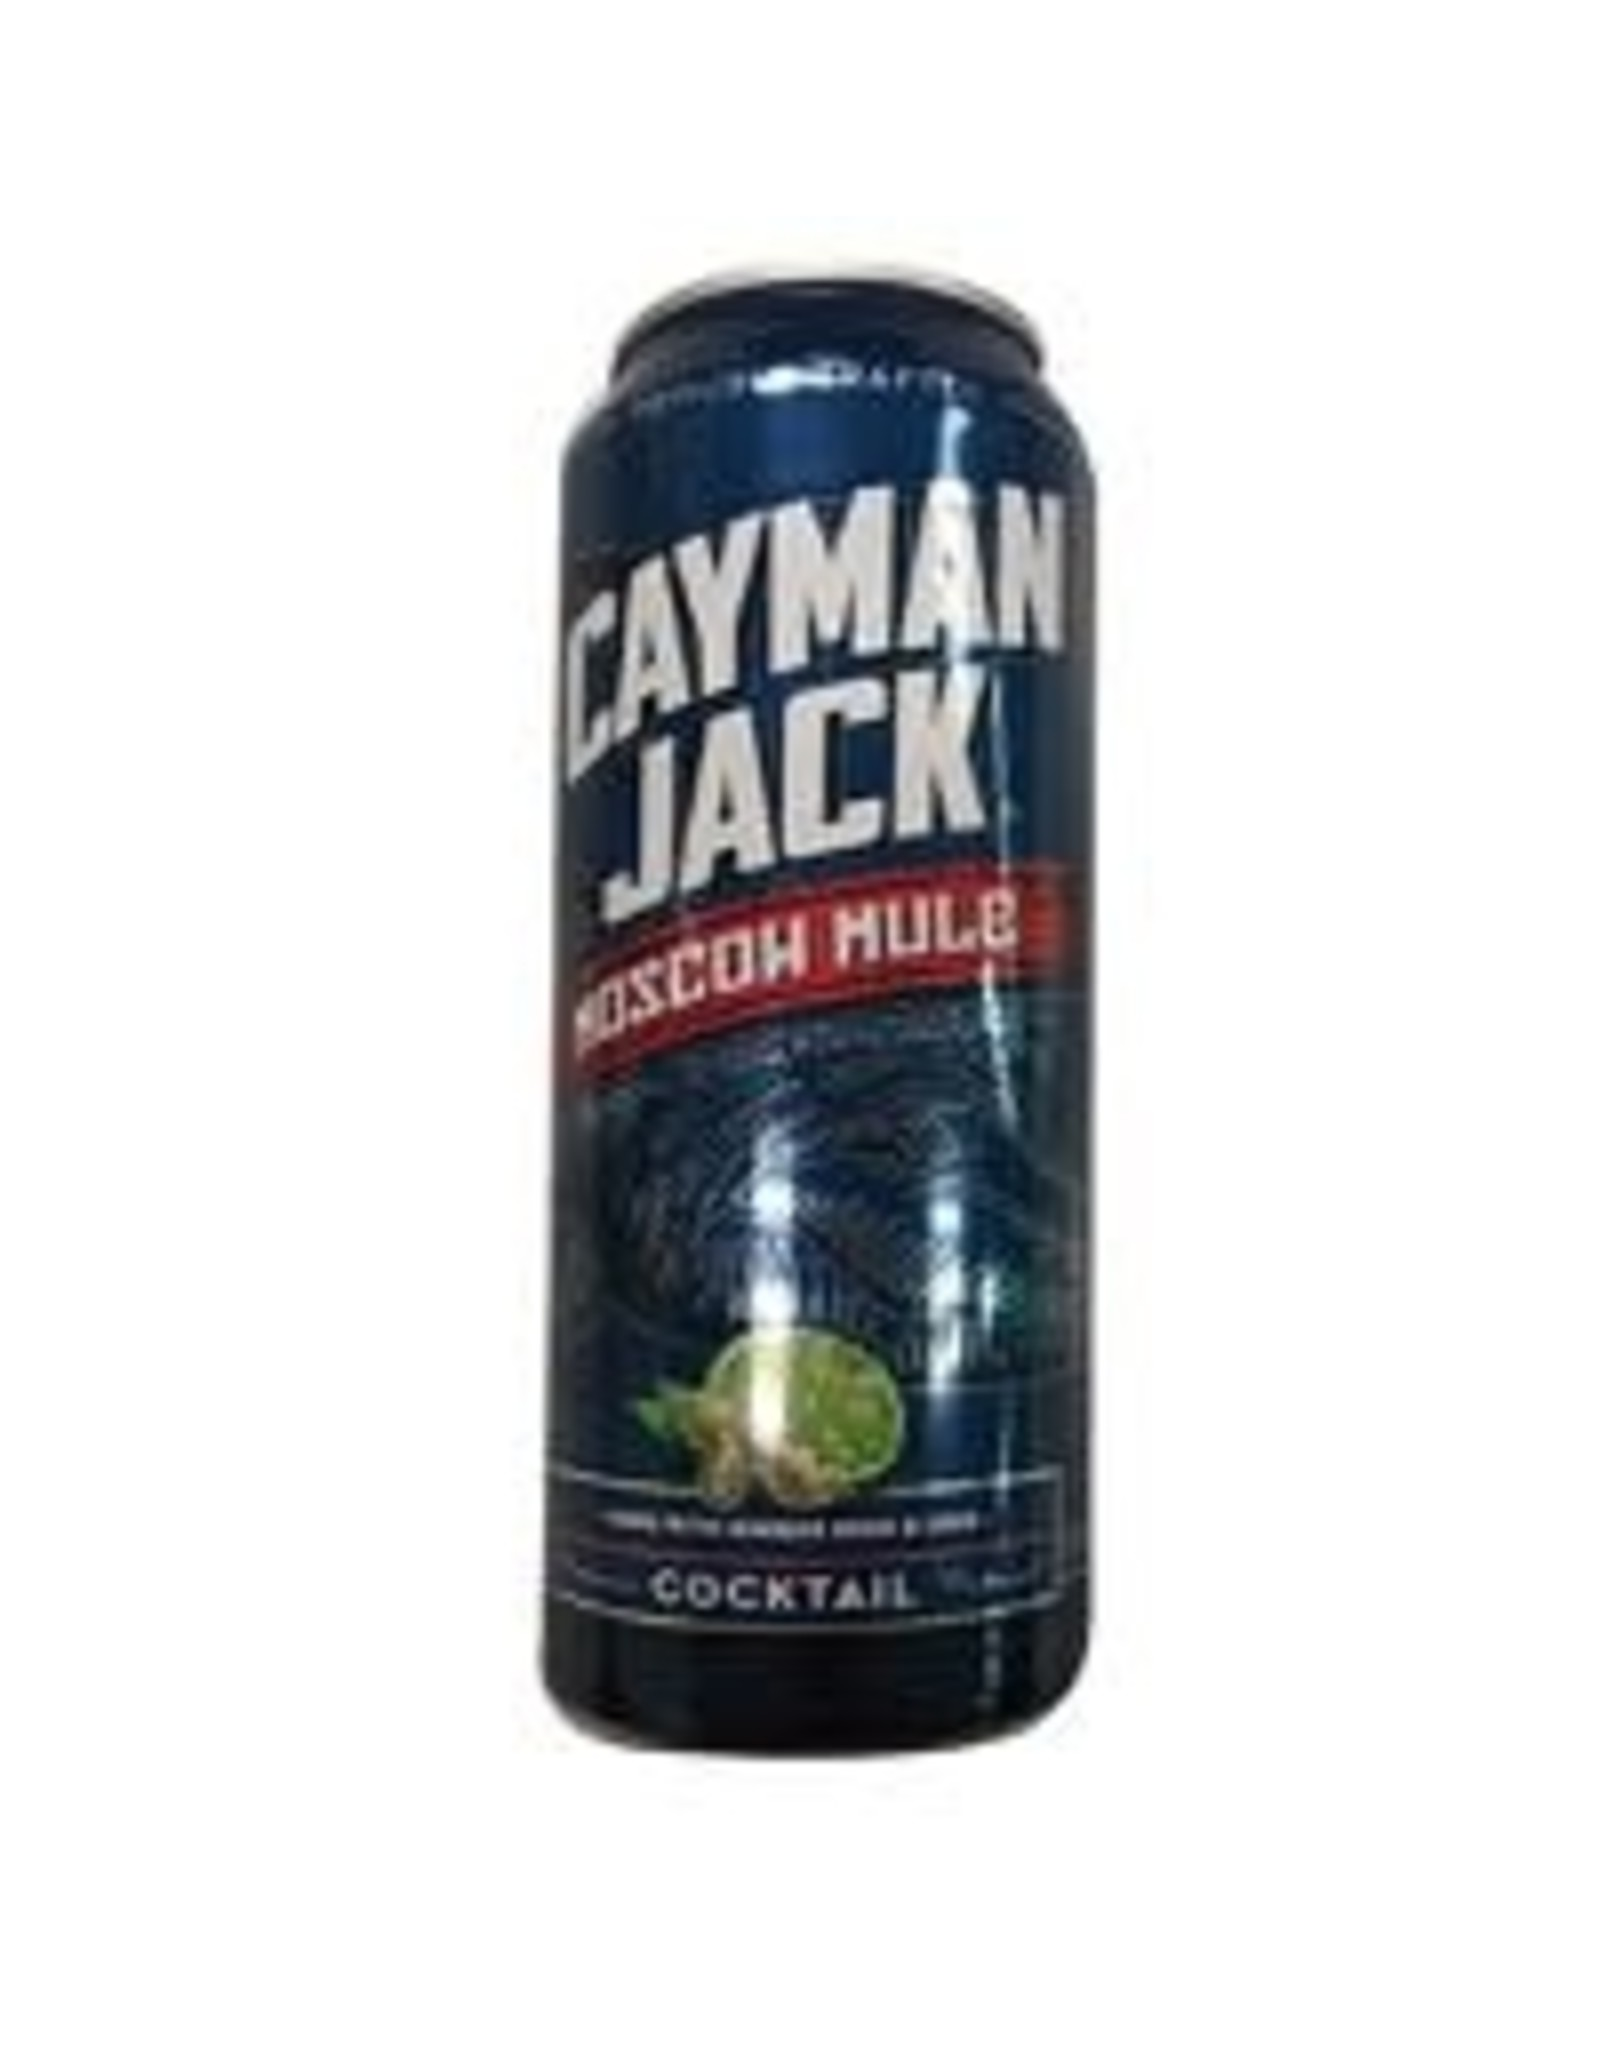 CAYMAN JACK MOSCOW MULE 12/19.2